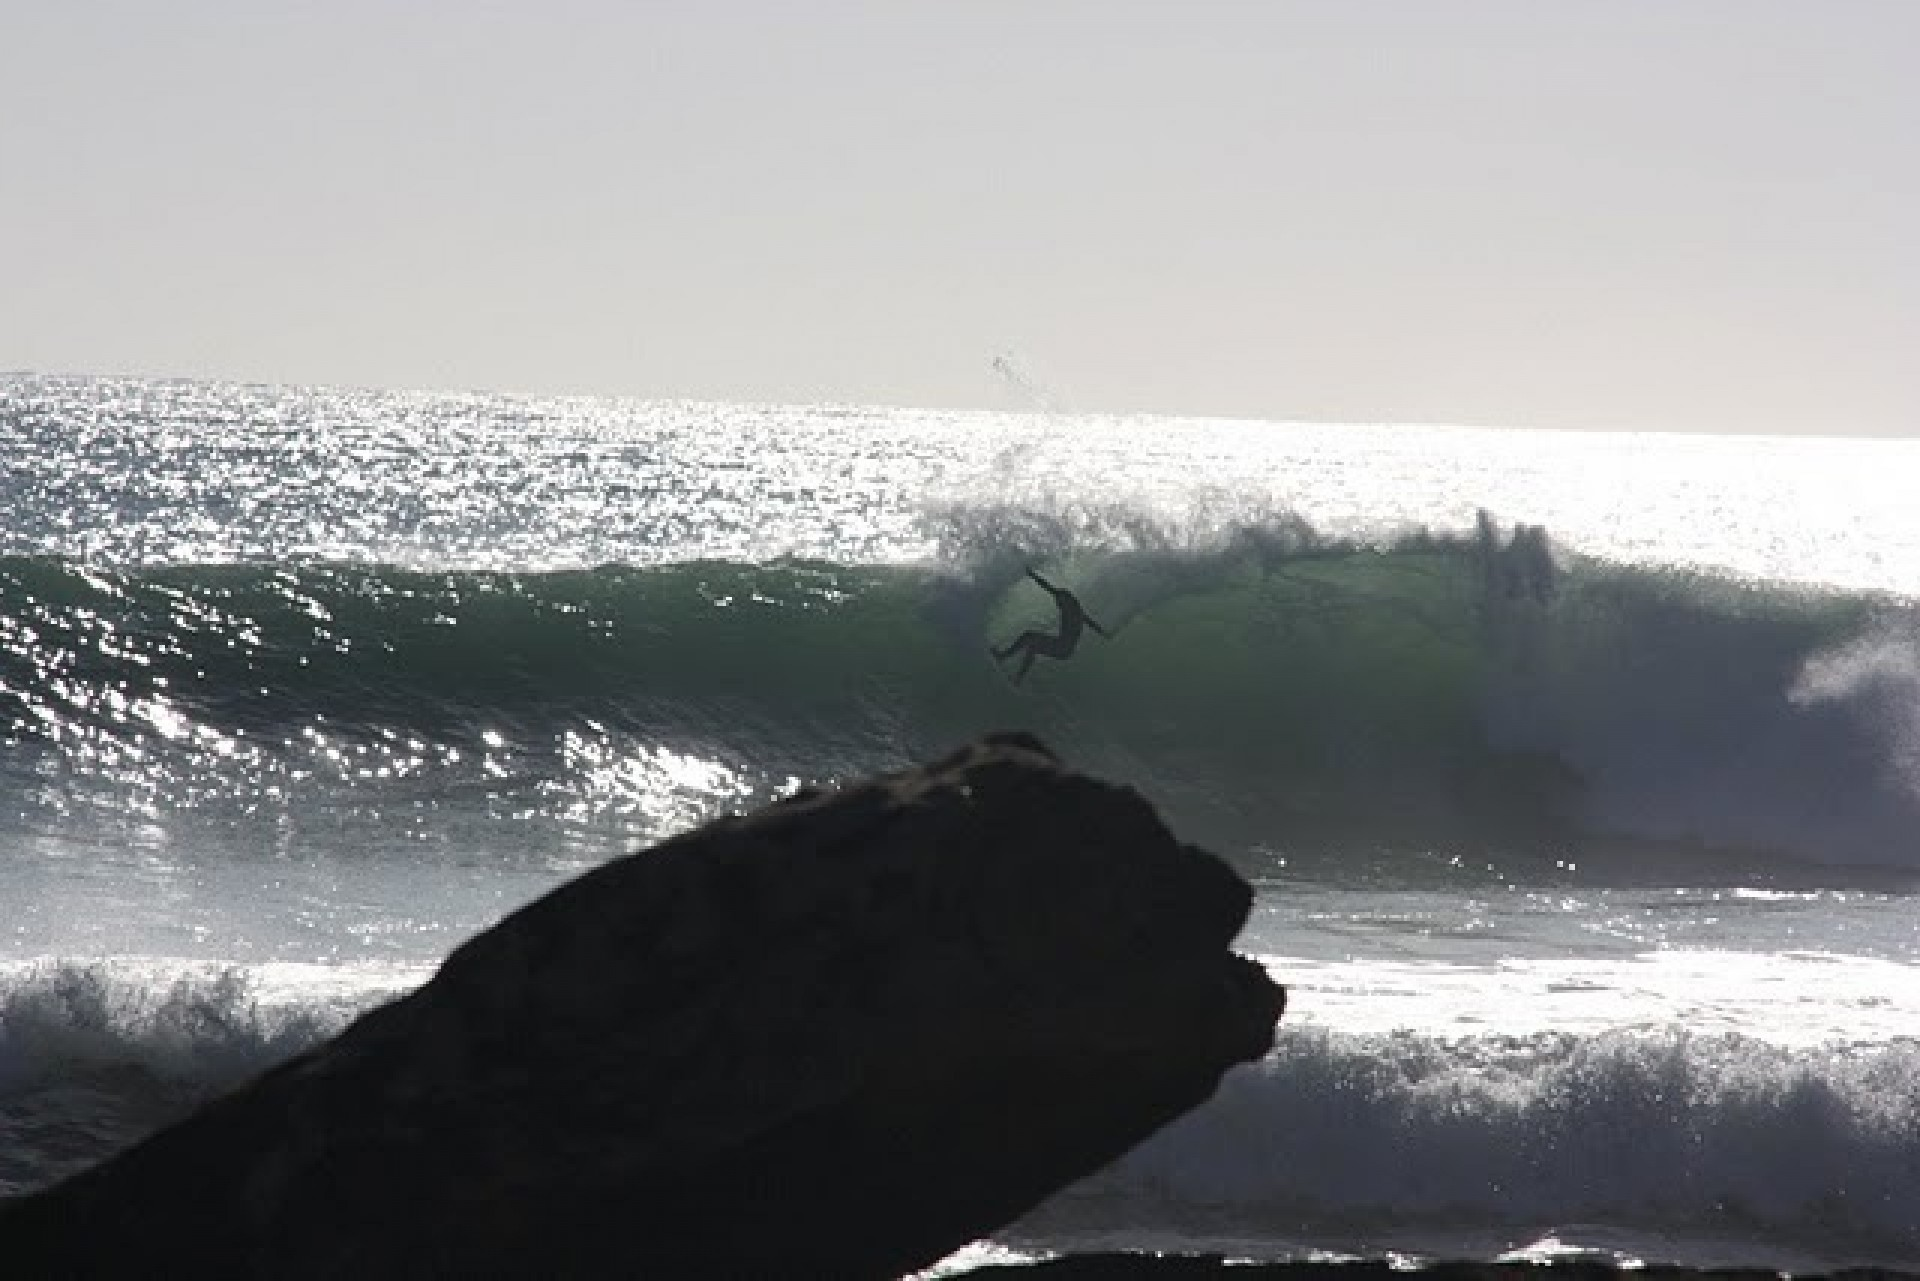 Surf Berbere Surf Camp & School's photo of Taghazout